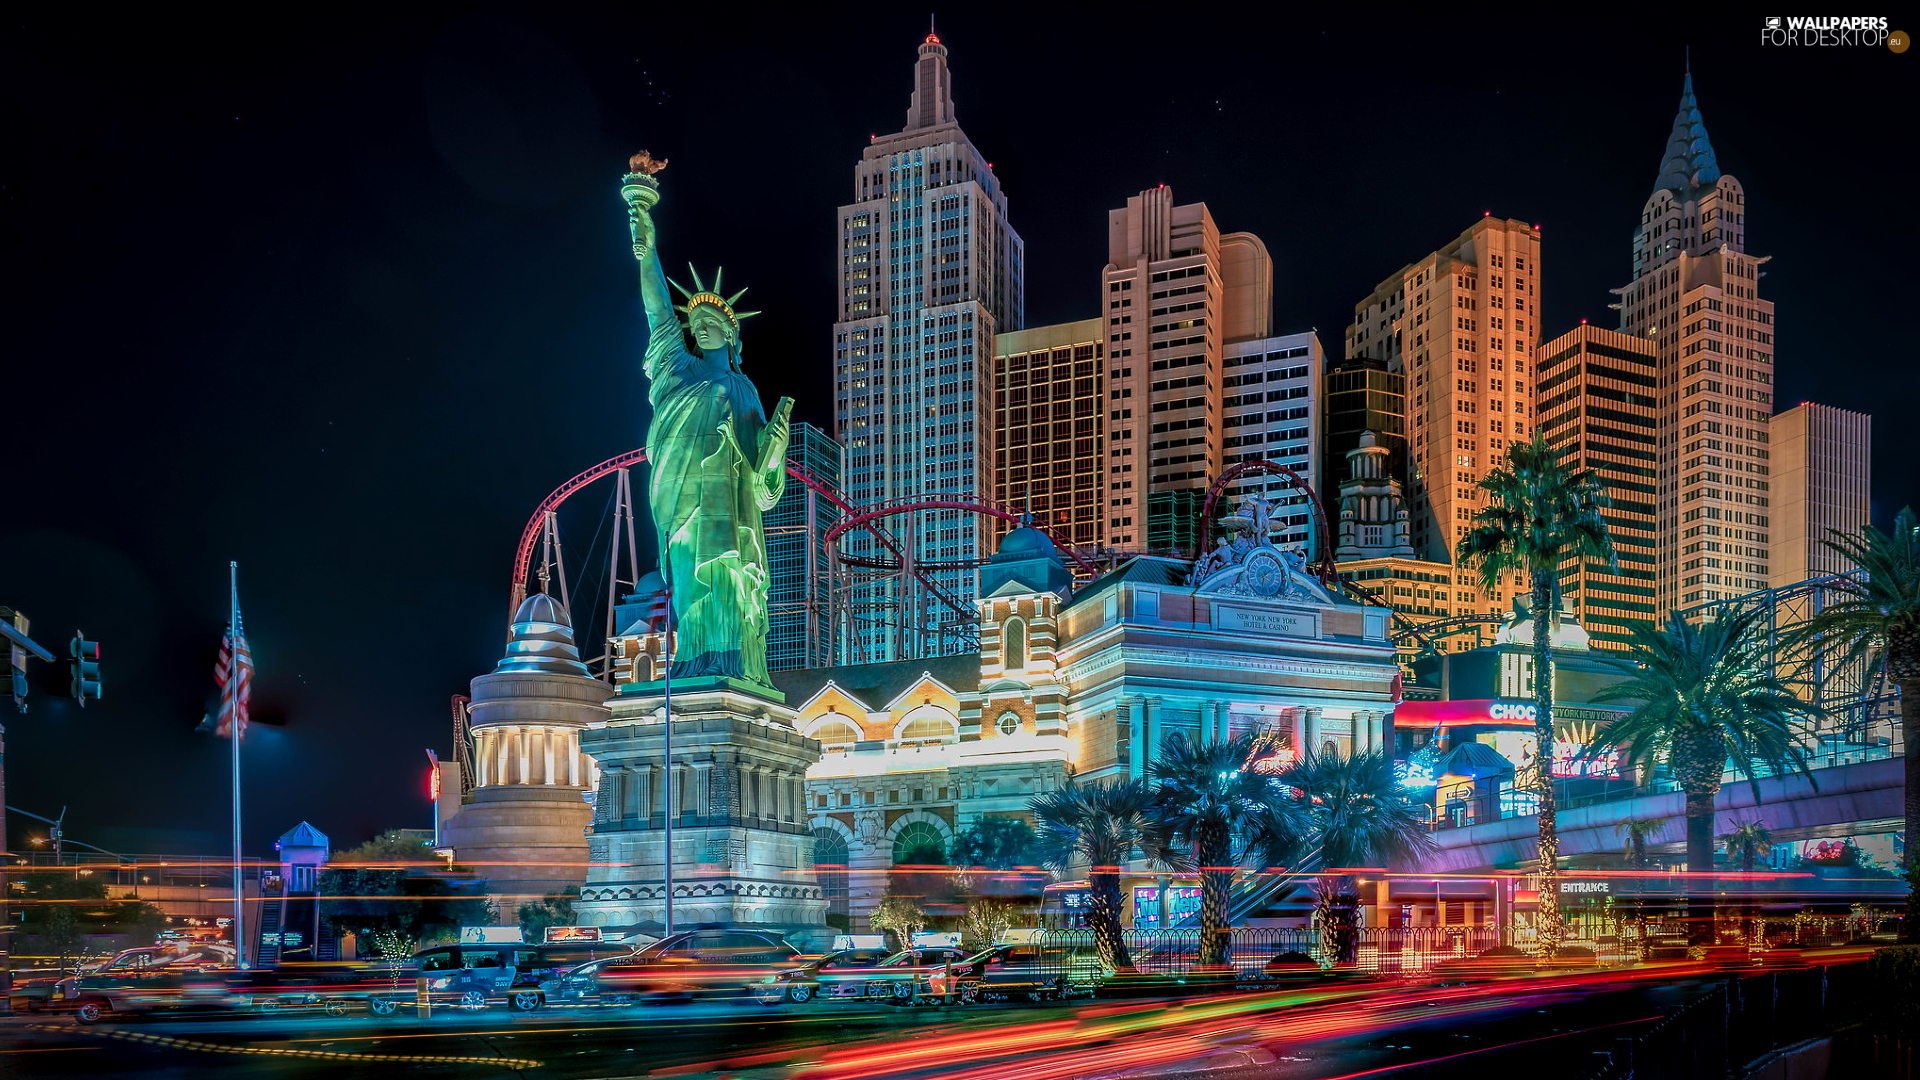 Night, skyscrapers, Nevada, The United States, Las Vegas, Statue of Liberty